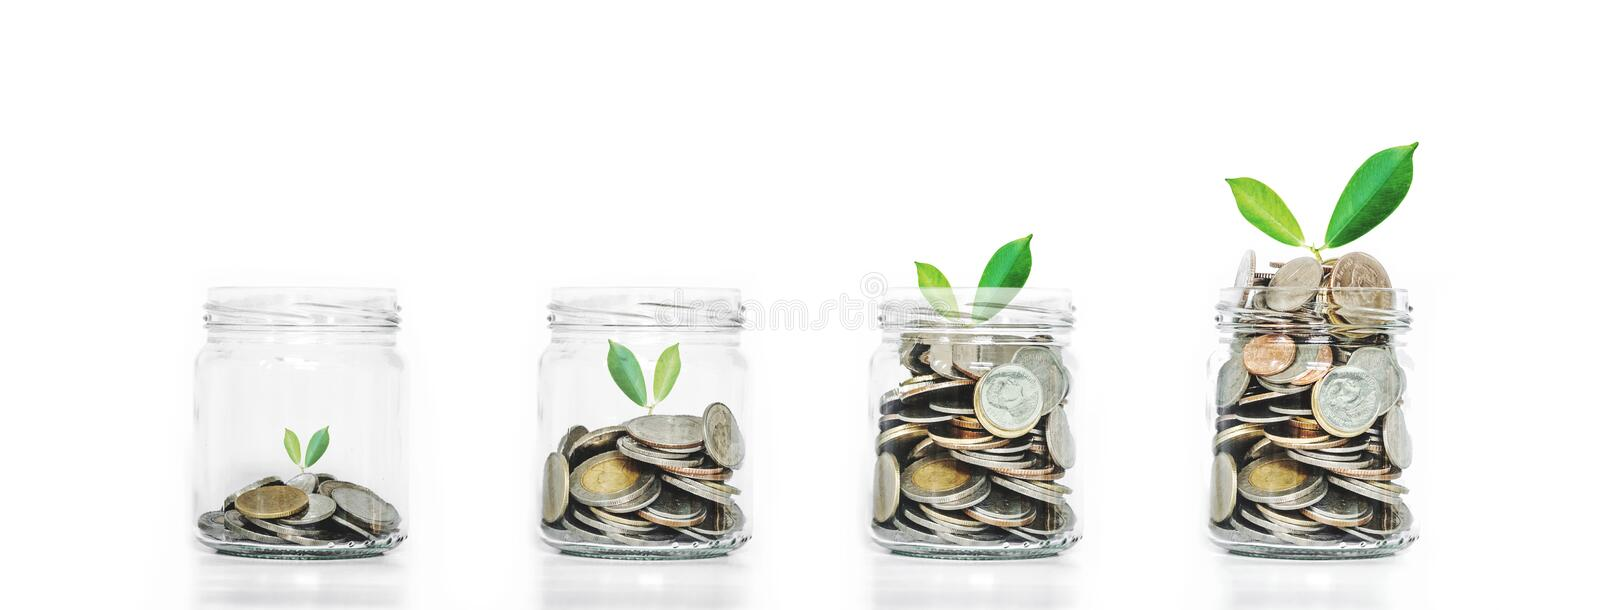 Money saving growth concepts, glass jar with coins and plants growing, isolated on white background. S royalty free stock image